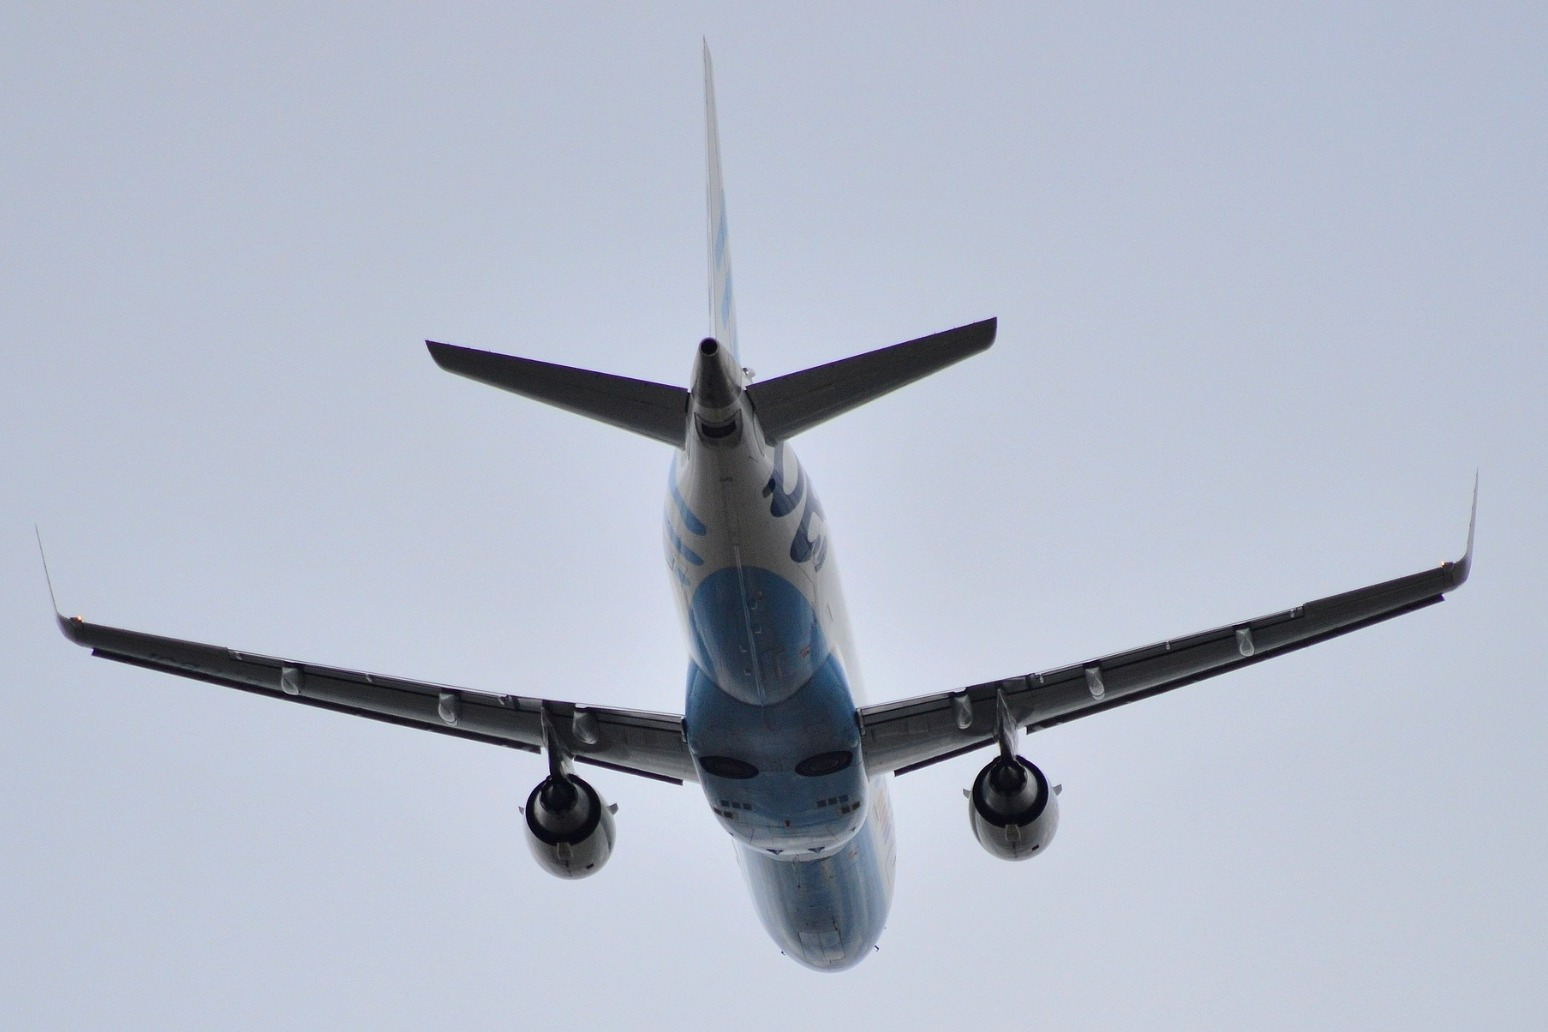 Plane gets all-clear after passenger falls ill on flight from Paris - Flybe